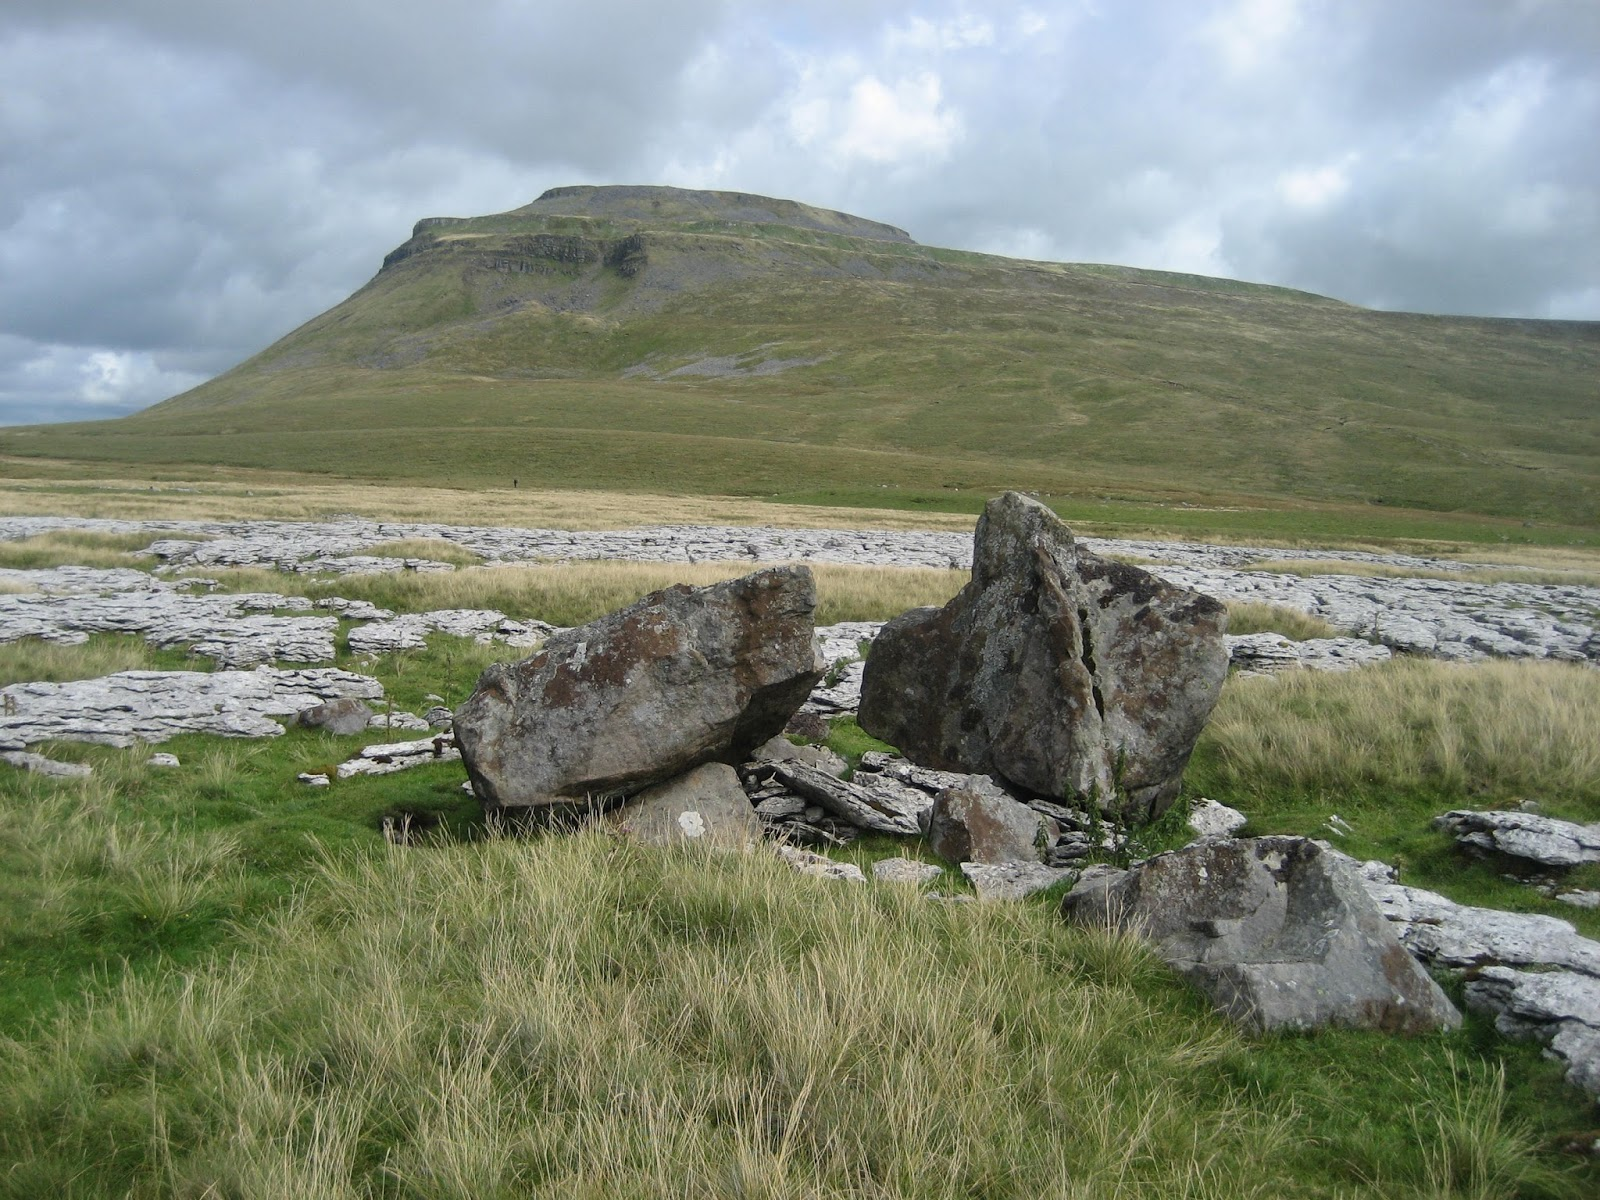 Erratic boulders of Grassington Grit above White Scars, on the west flank of Chapel-le-Dale. Stephen Oldfield